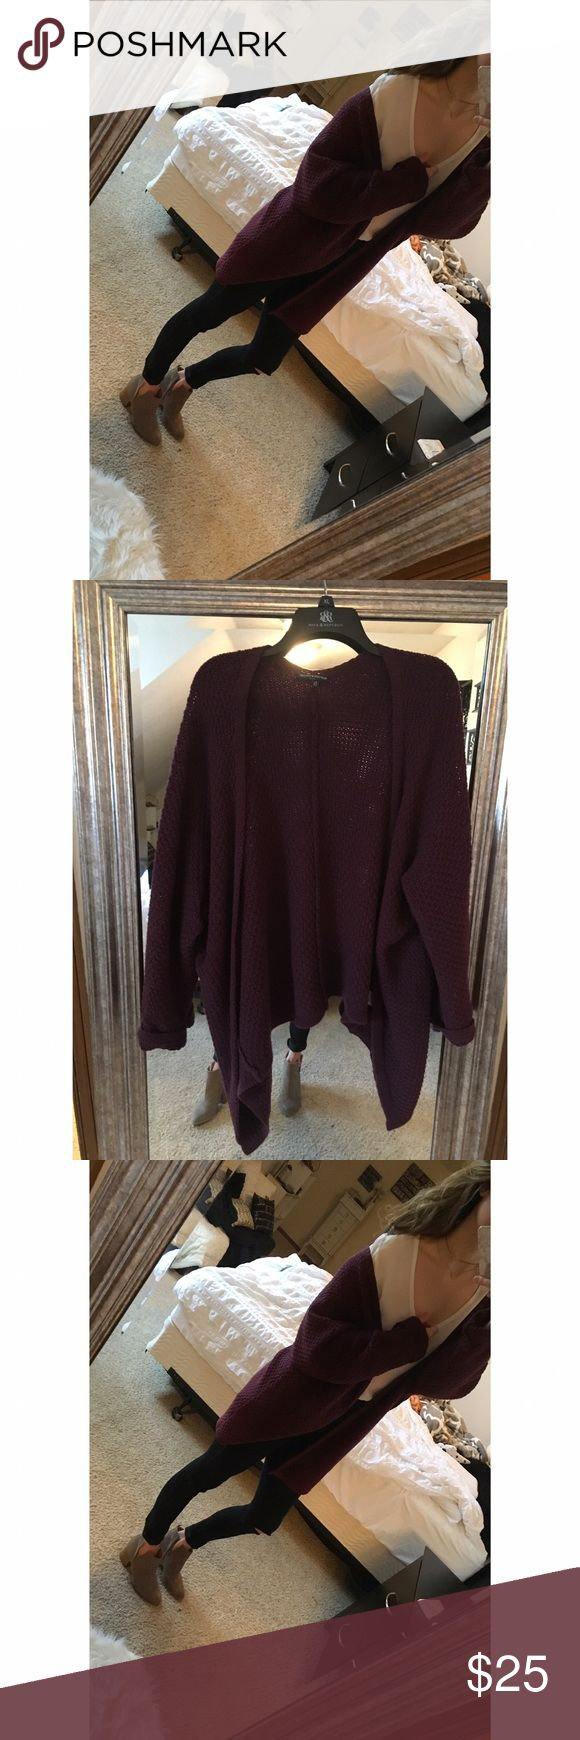 Brandy Melville cardigan Burgundy sweater cardigan. Worn very few times, no signs of wear. Great condition! ❌NO TRADES Brandy Melville Sweaters